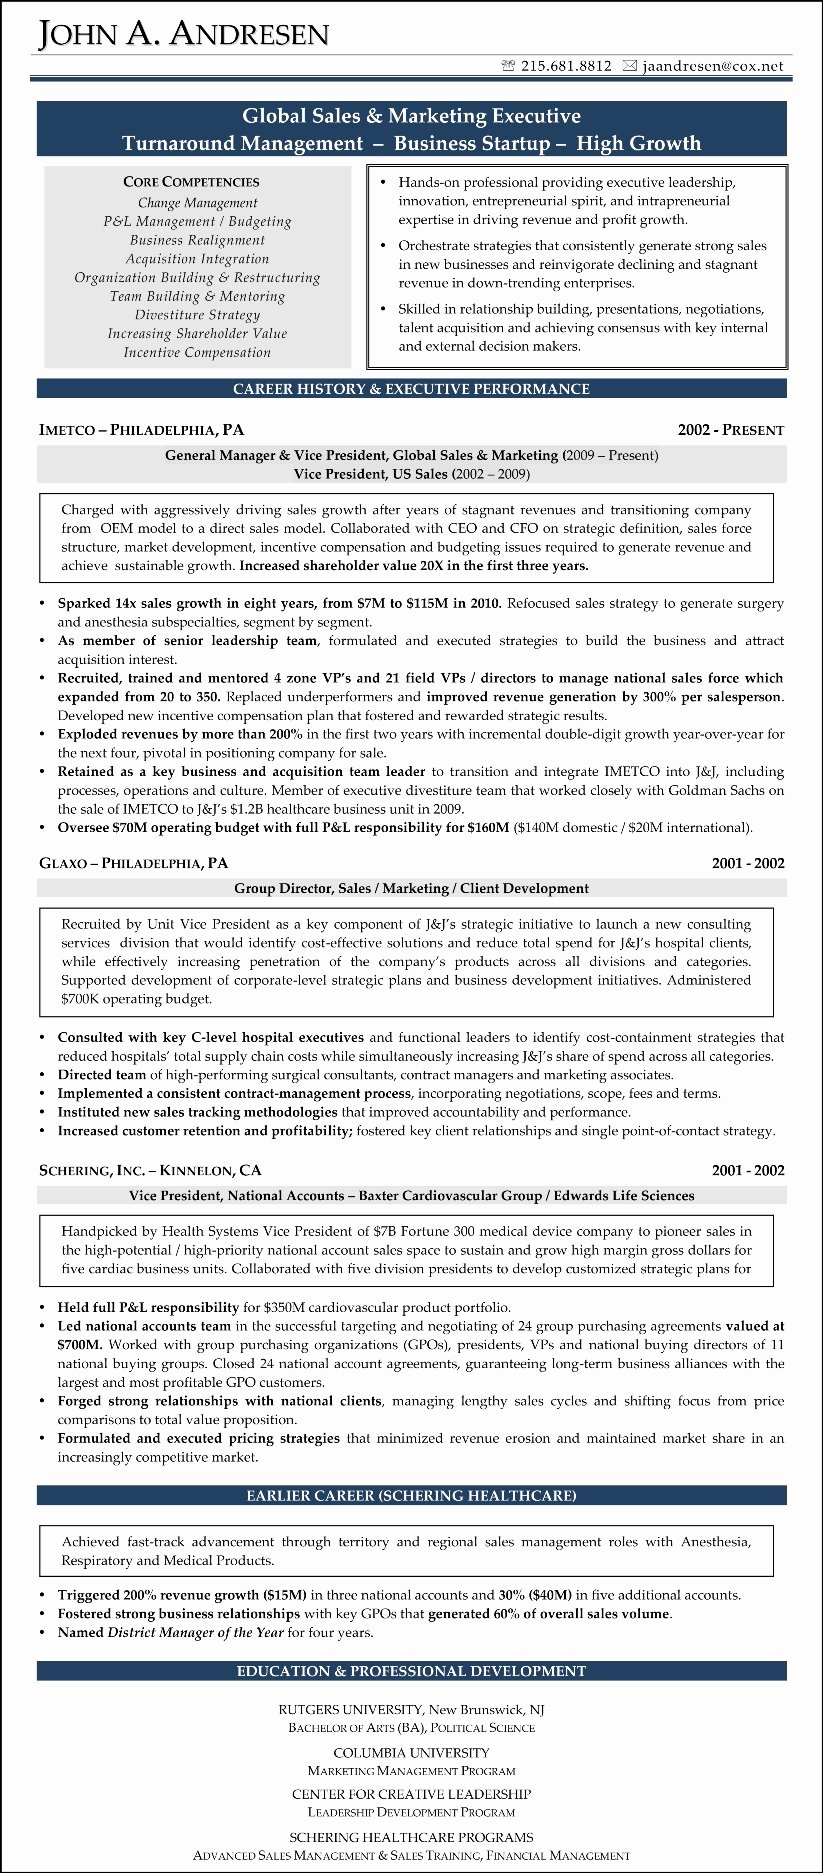 Sales and Marketing Resume Samples Lovely Sample Résumé Sales & Marketing